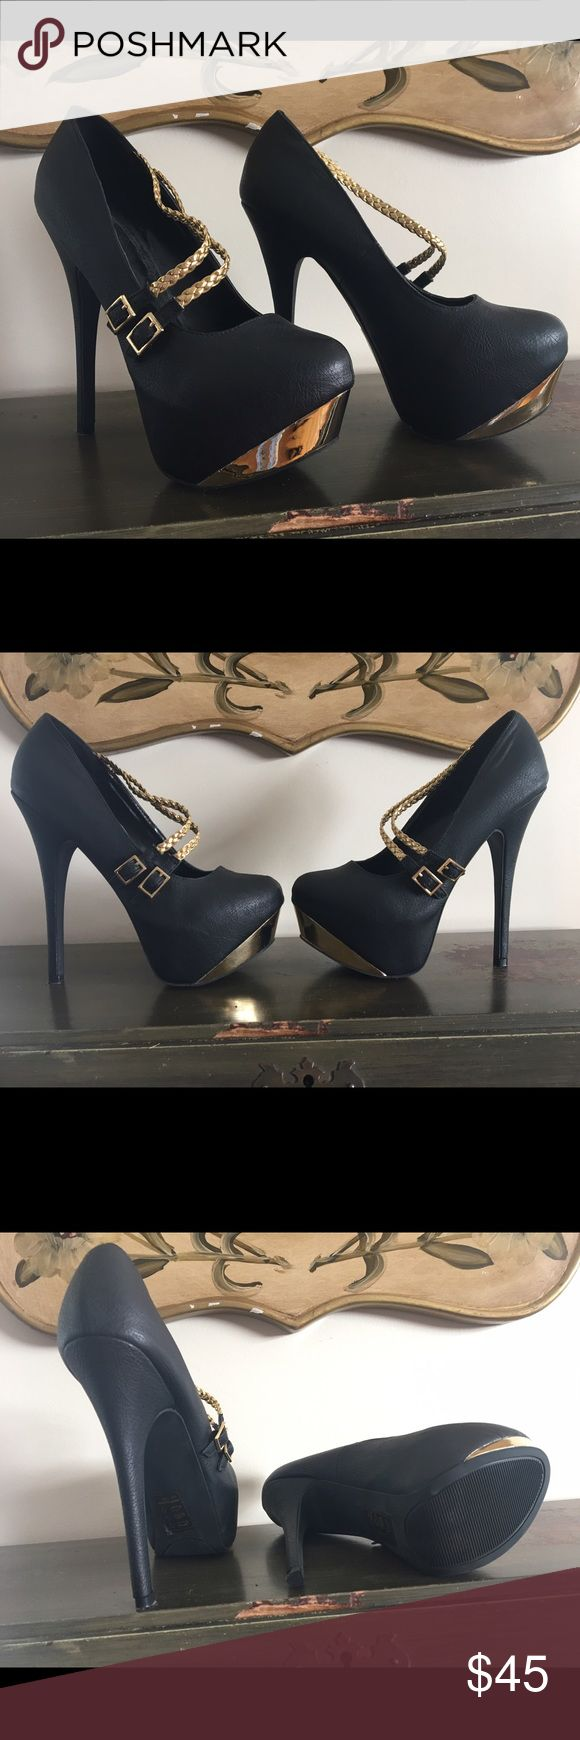 Maddison - Black and Gold Pumps Great condition! Never worn outside. Size 7.5 Maddison by Shoedazzle Shoes Heels